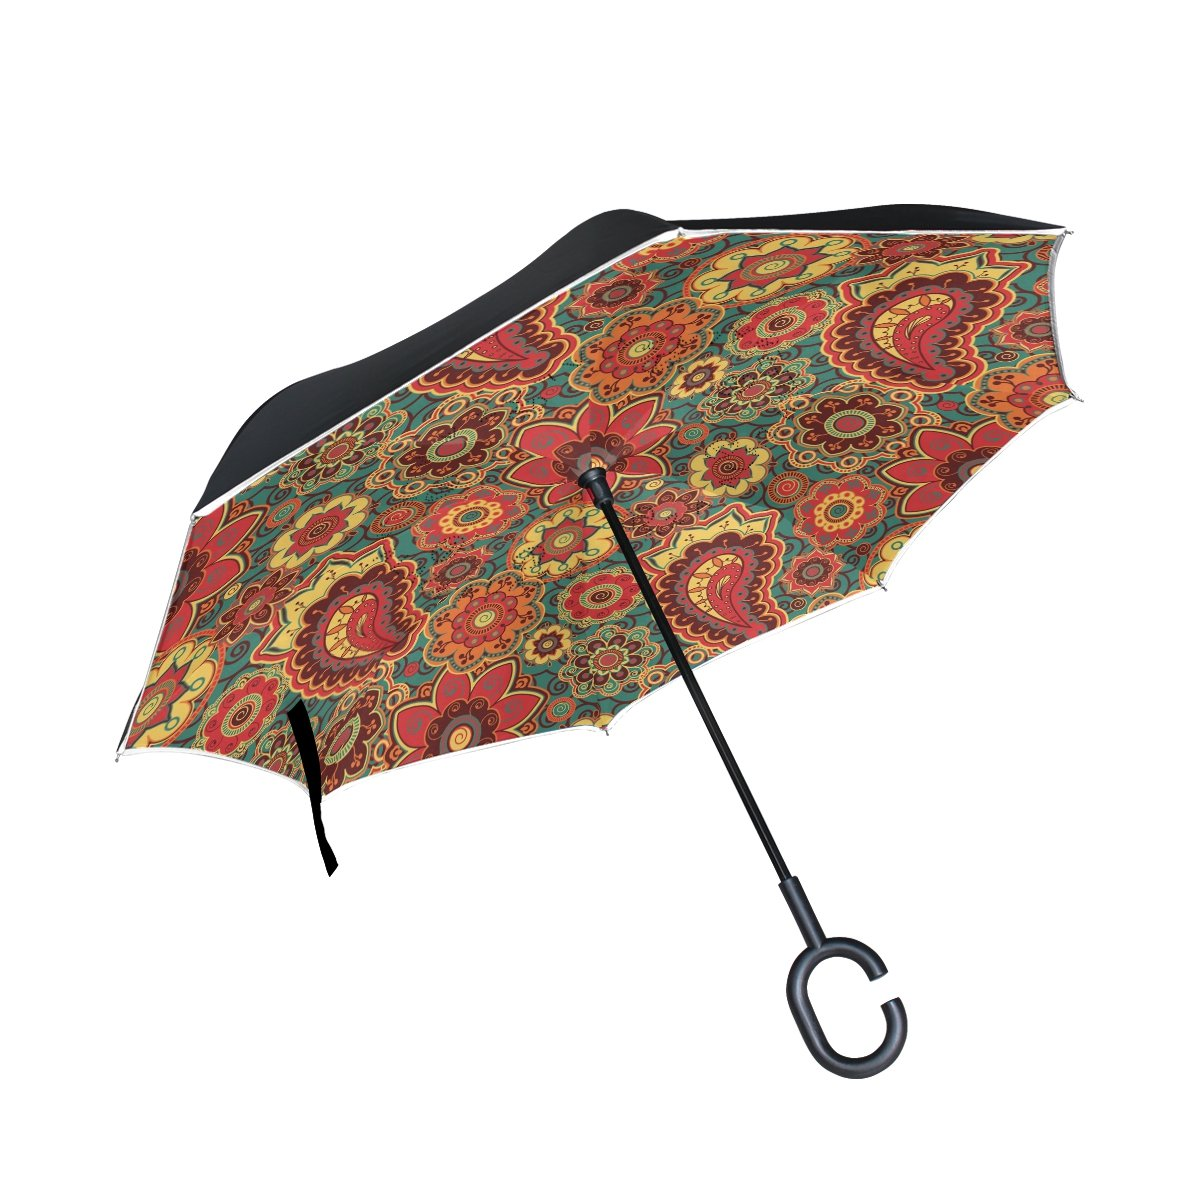 ALAZA Inside Out Folding Retro Colored Paisley Inverted Umbrella, Large Double Layer Outdoor Rain Sun Car Reversible Umbrella   B076T1LXZM